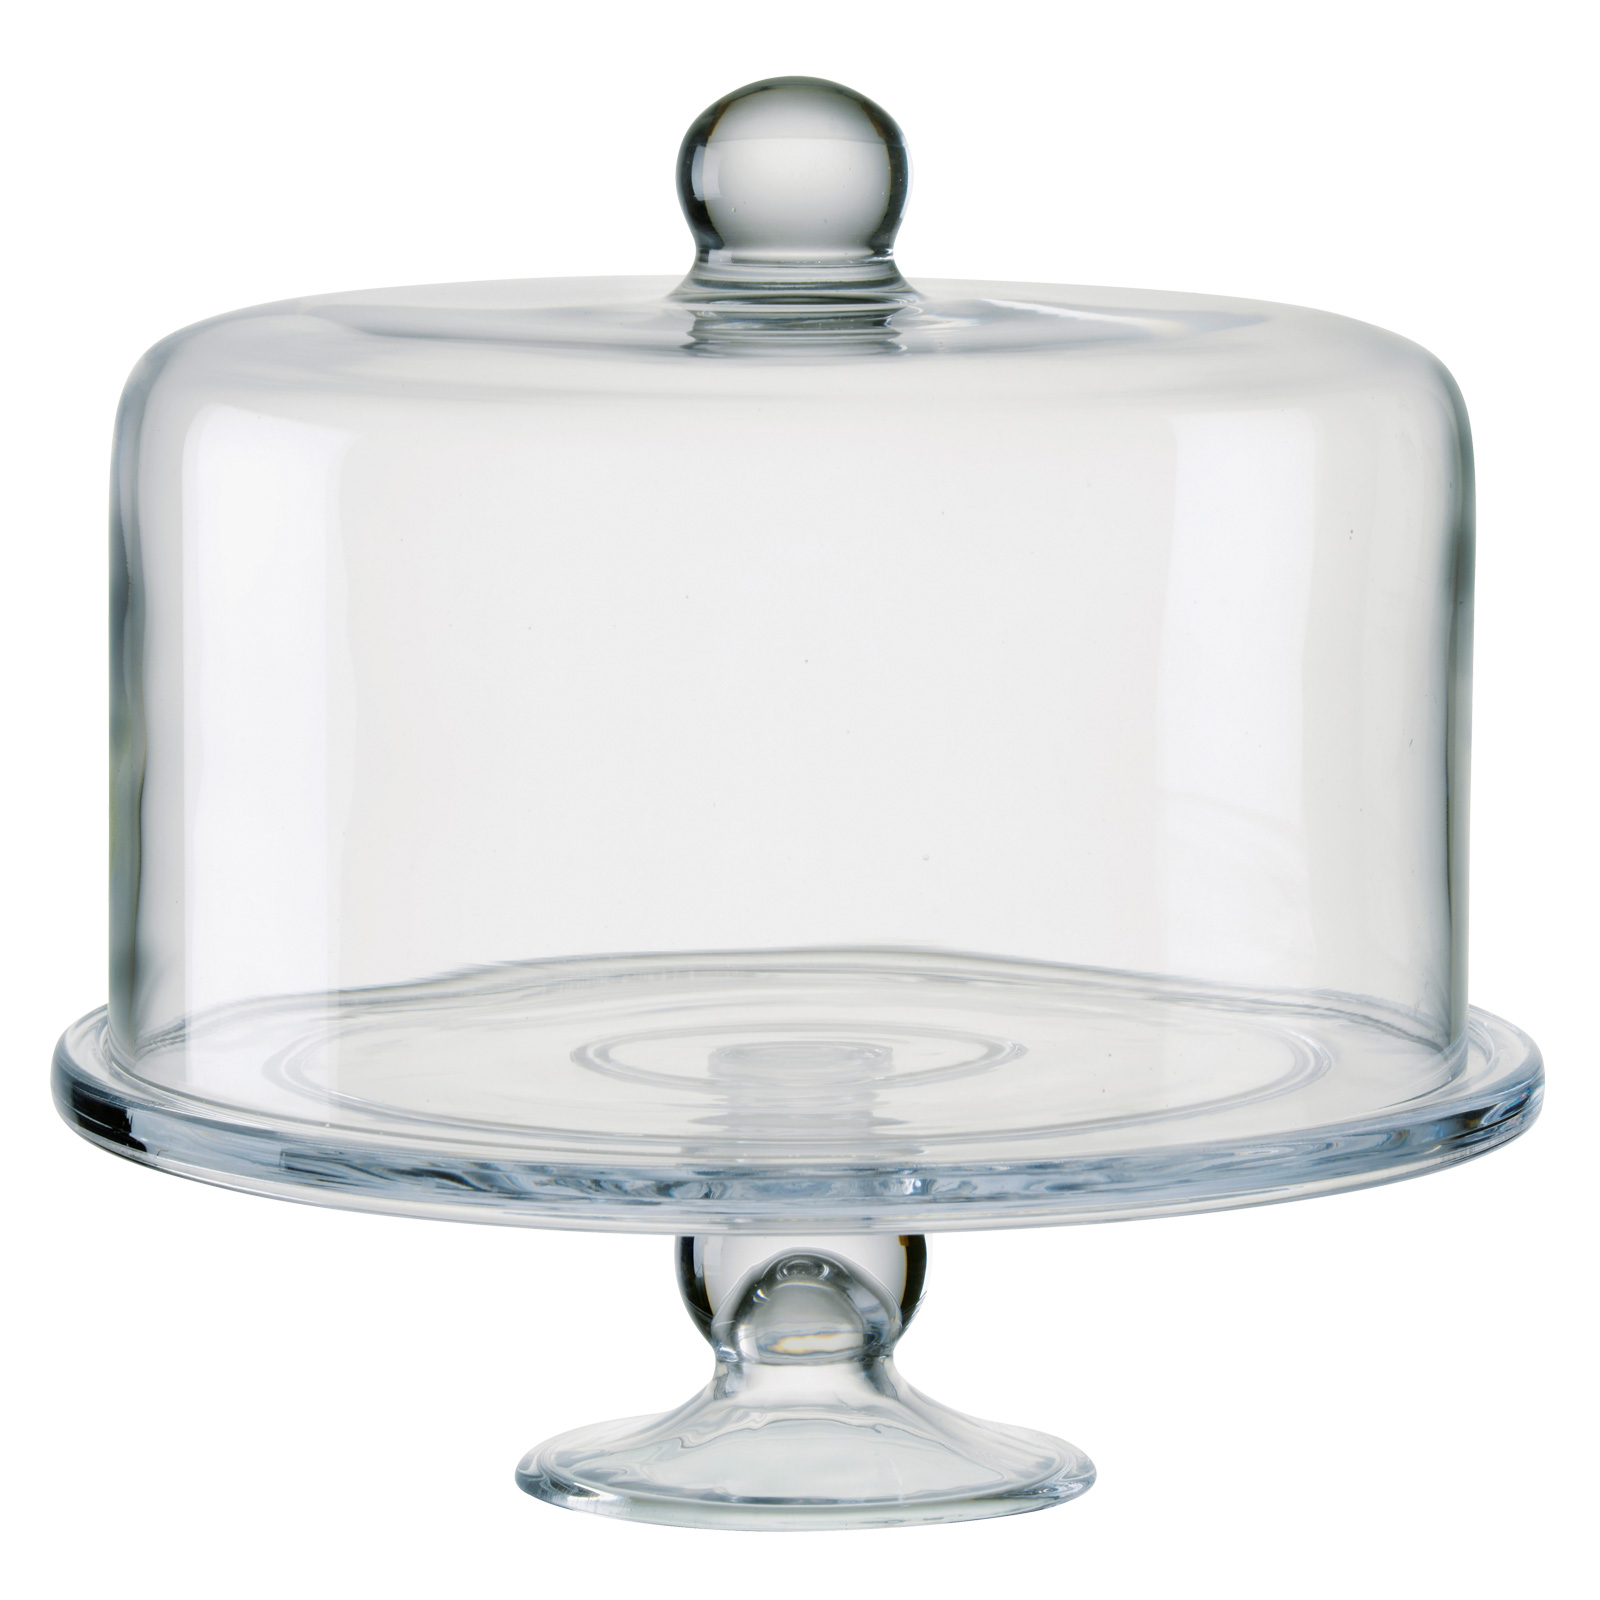 Simplicity Cake Stand with Straight Sided Dome